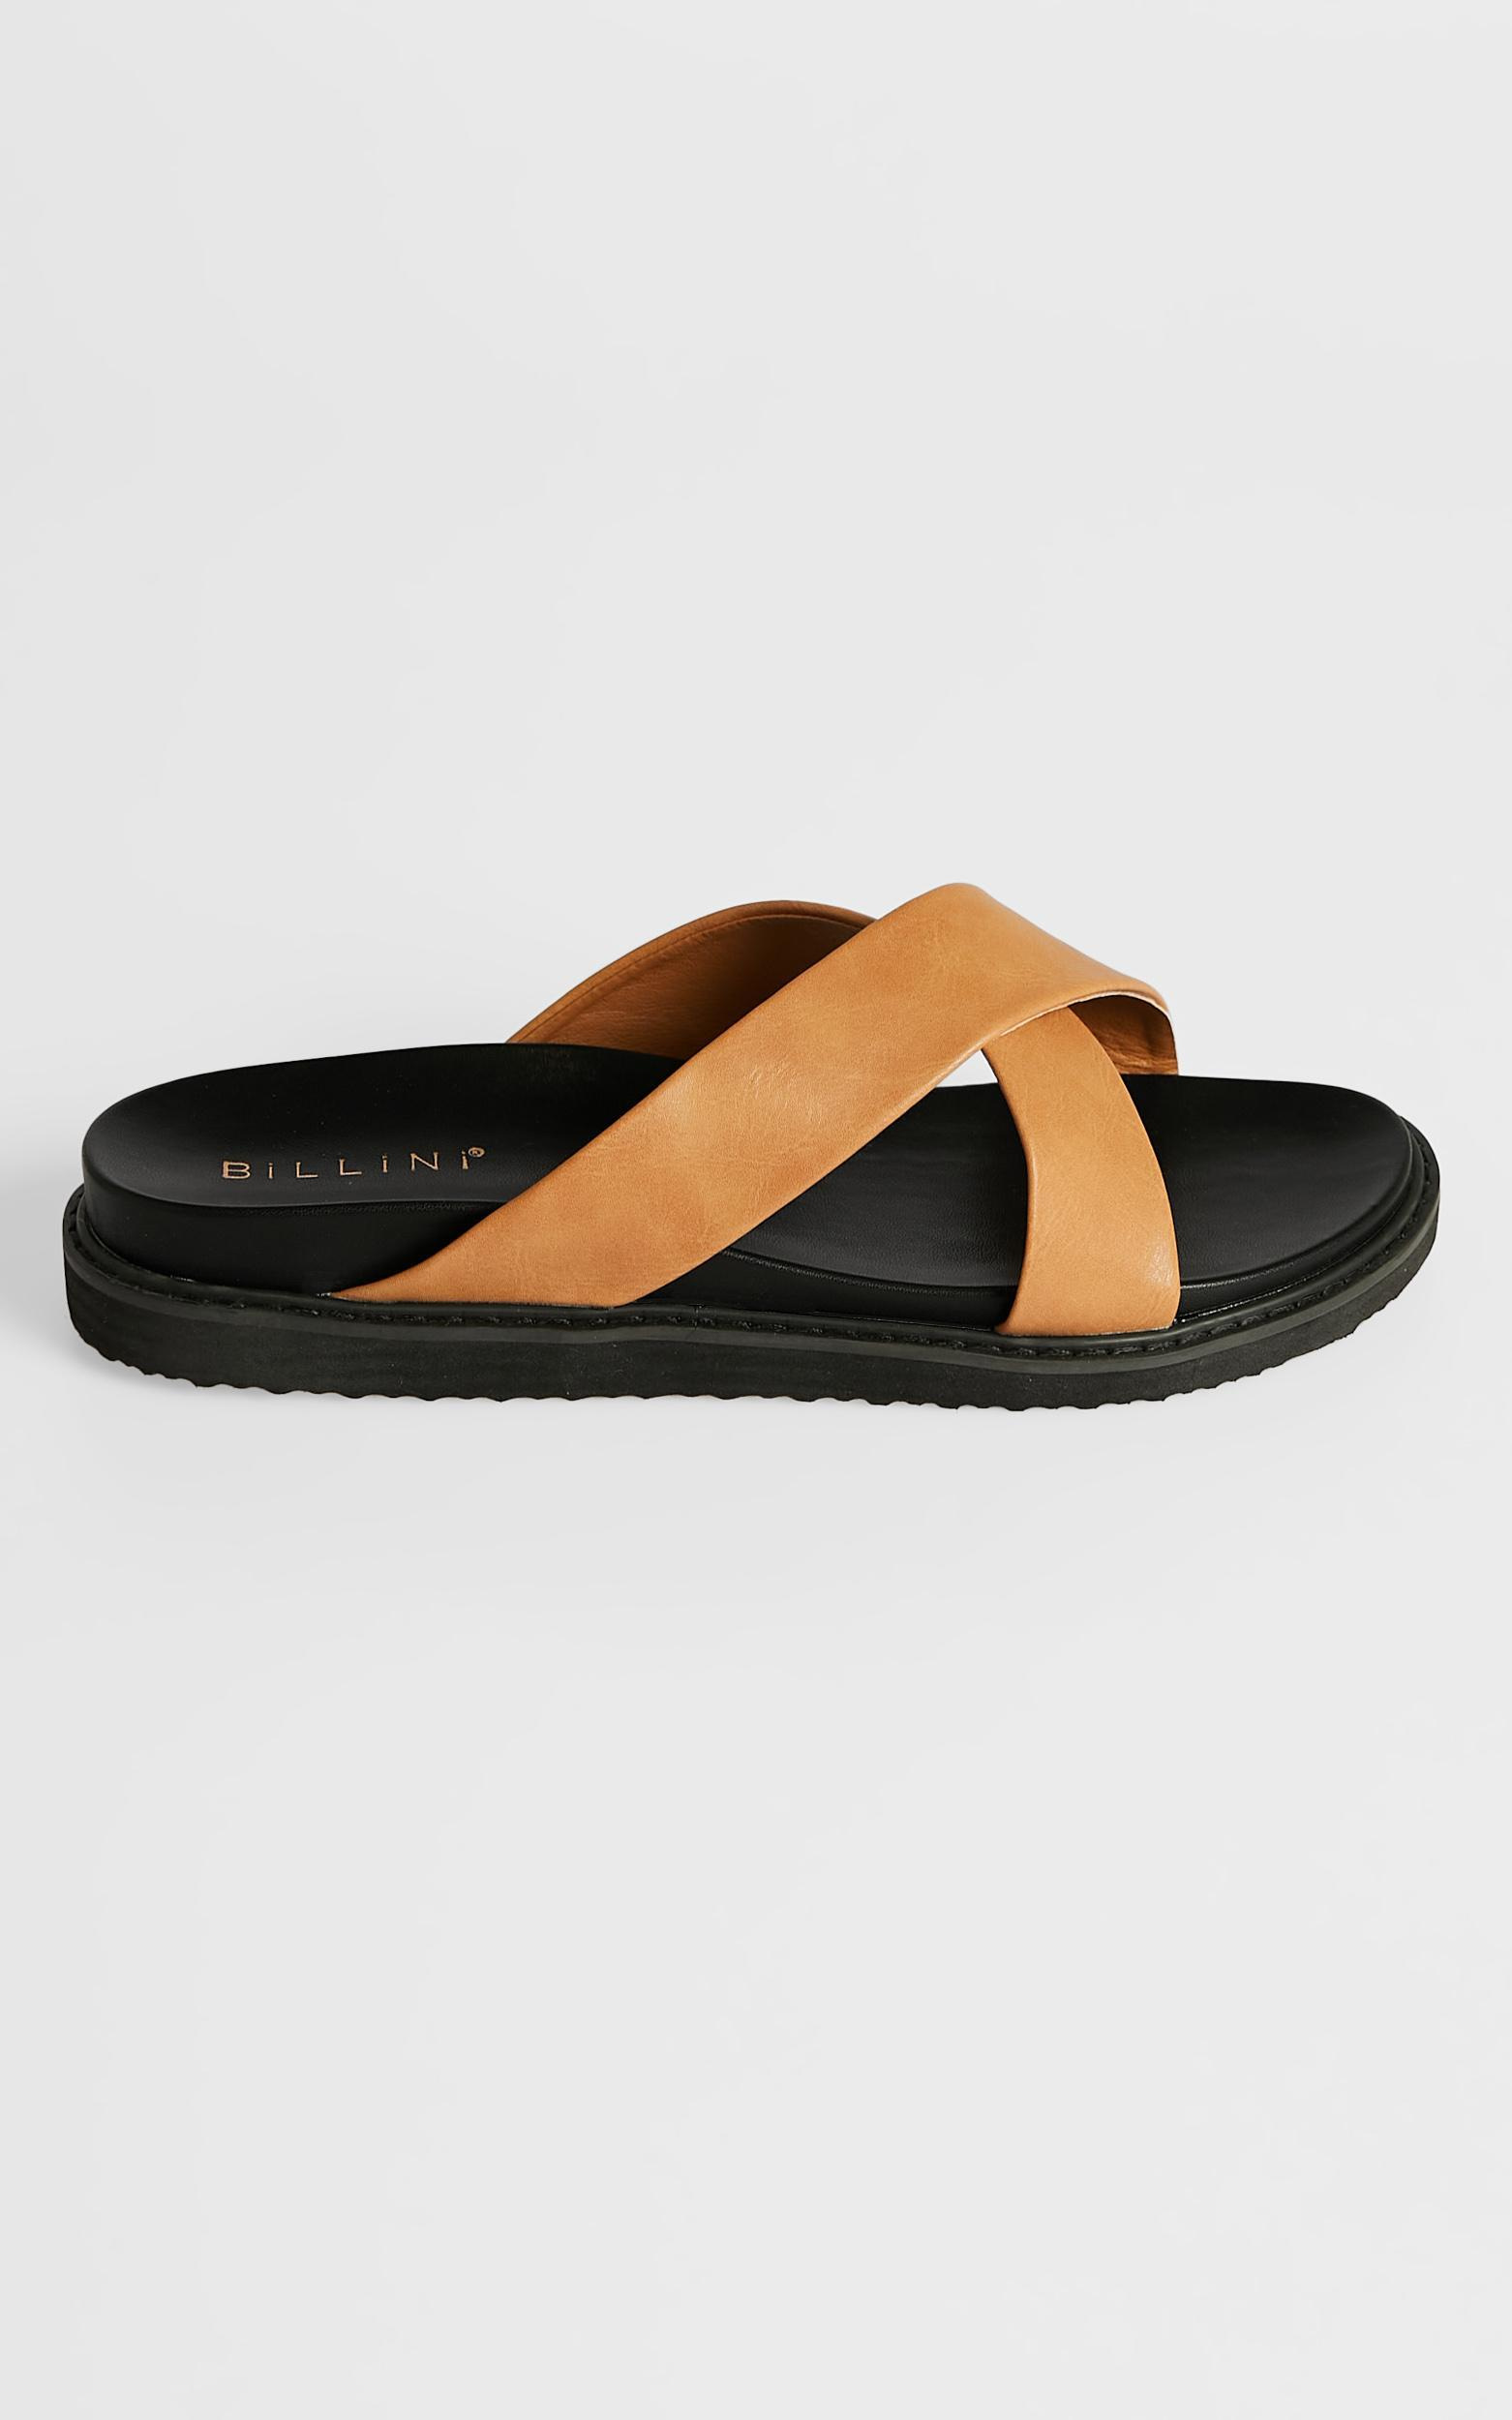 Billini - Zada Sandals in Sugar Brown - 5, Brown, hi-res image number null